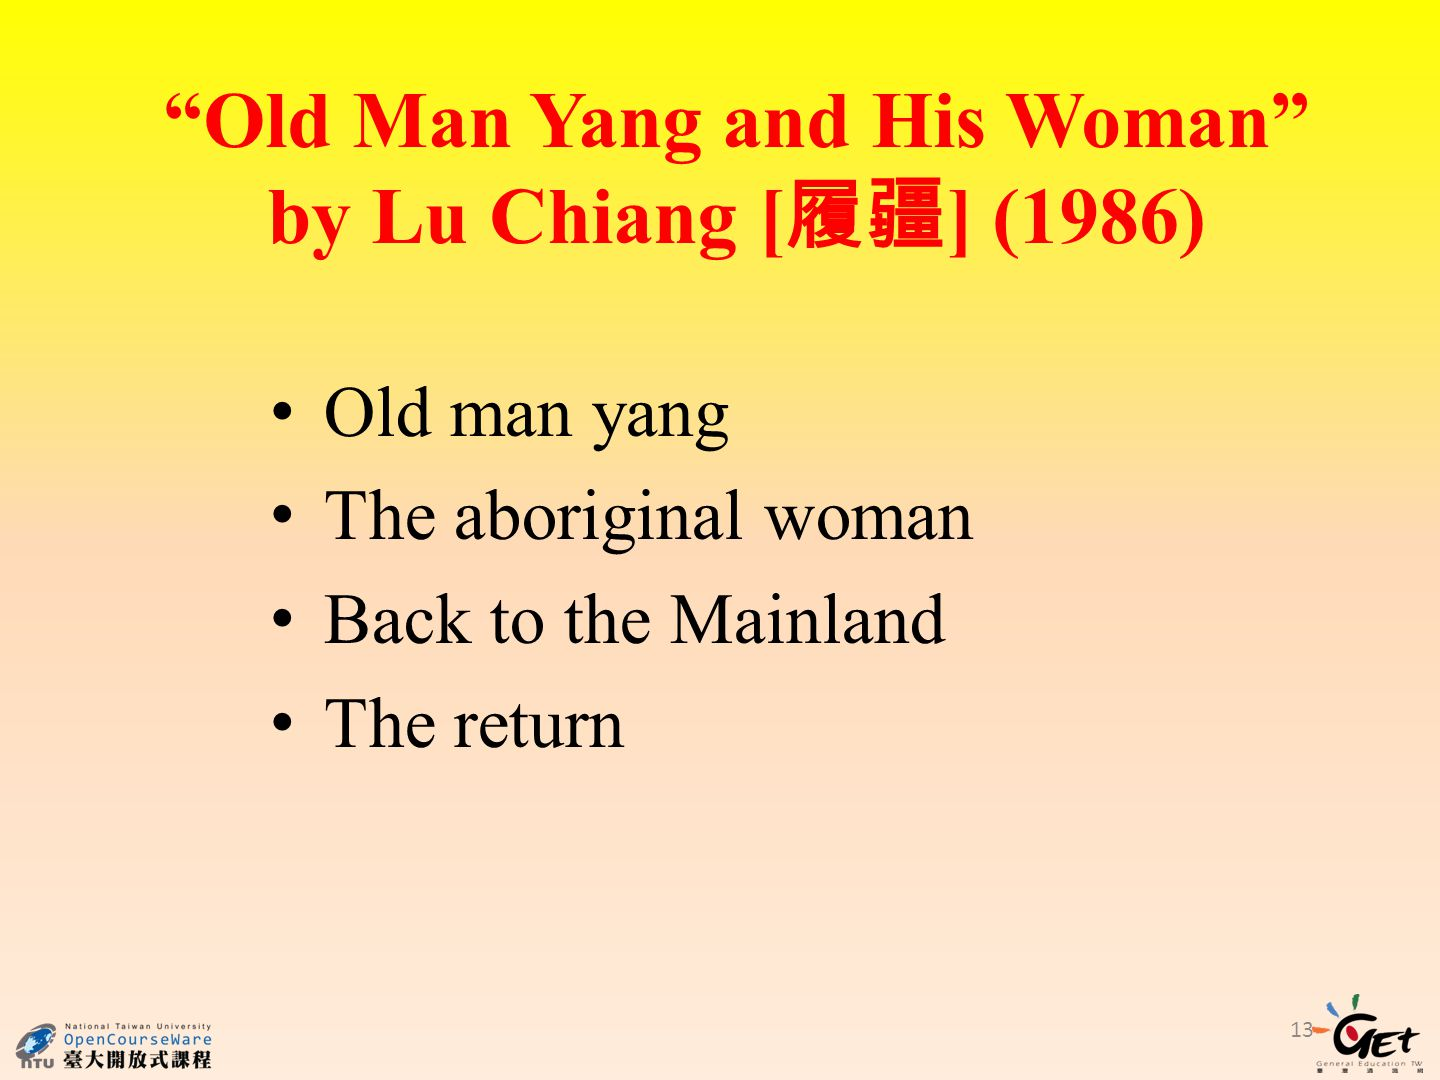 Old Man Yang and His Woman by Lu Chiang [ ] (1986) 13 Old man yang The aboriginal woman Back to the Mainland The return